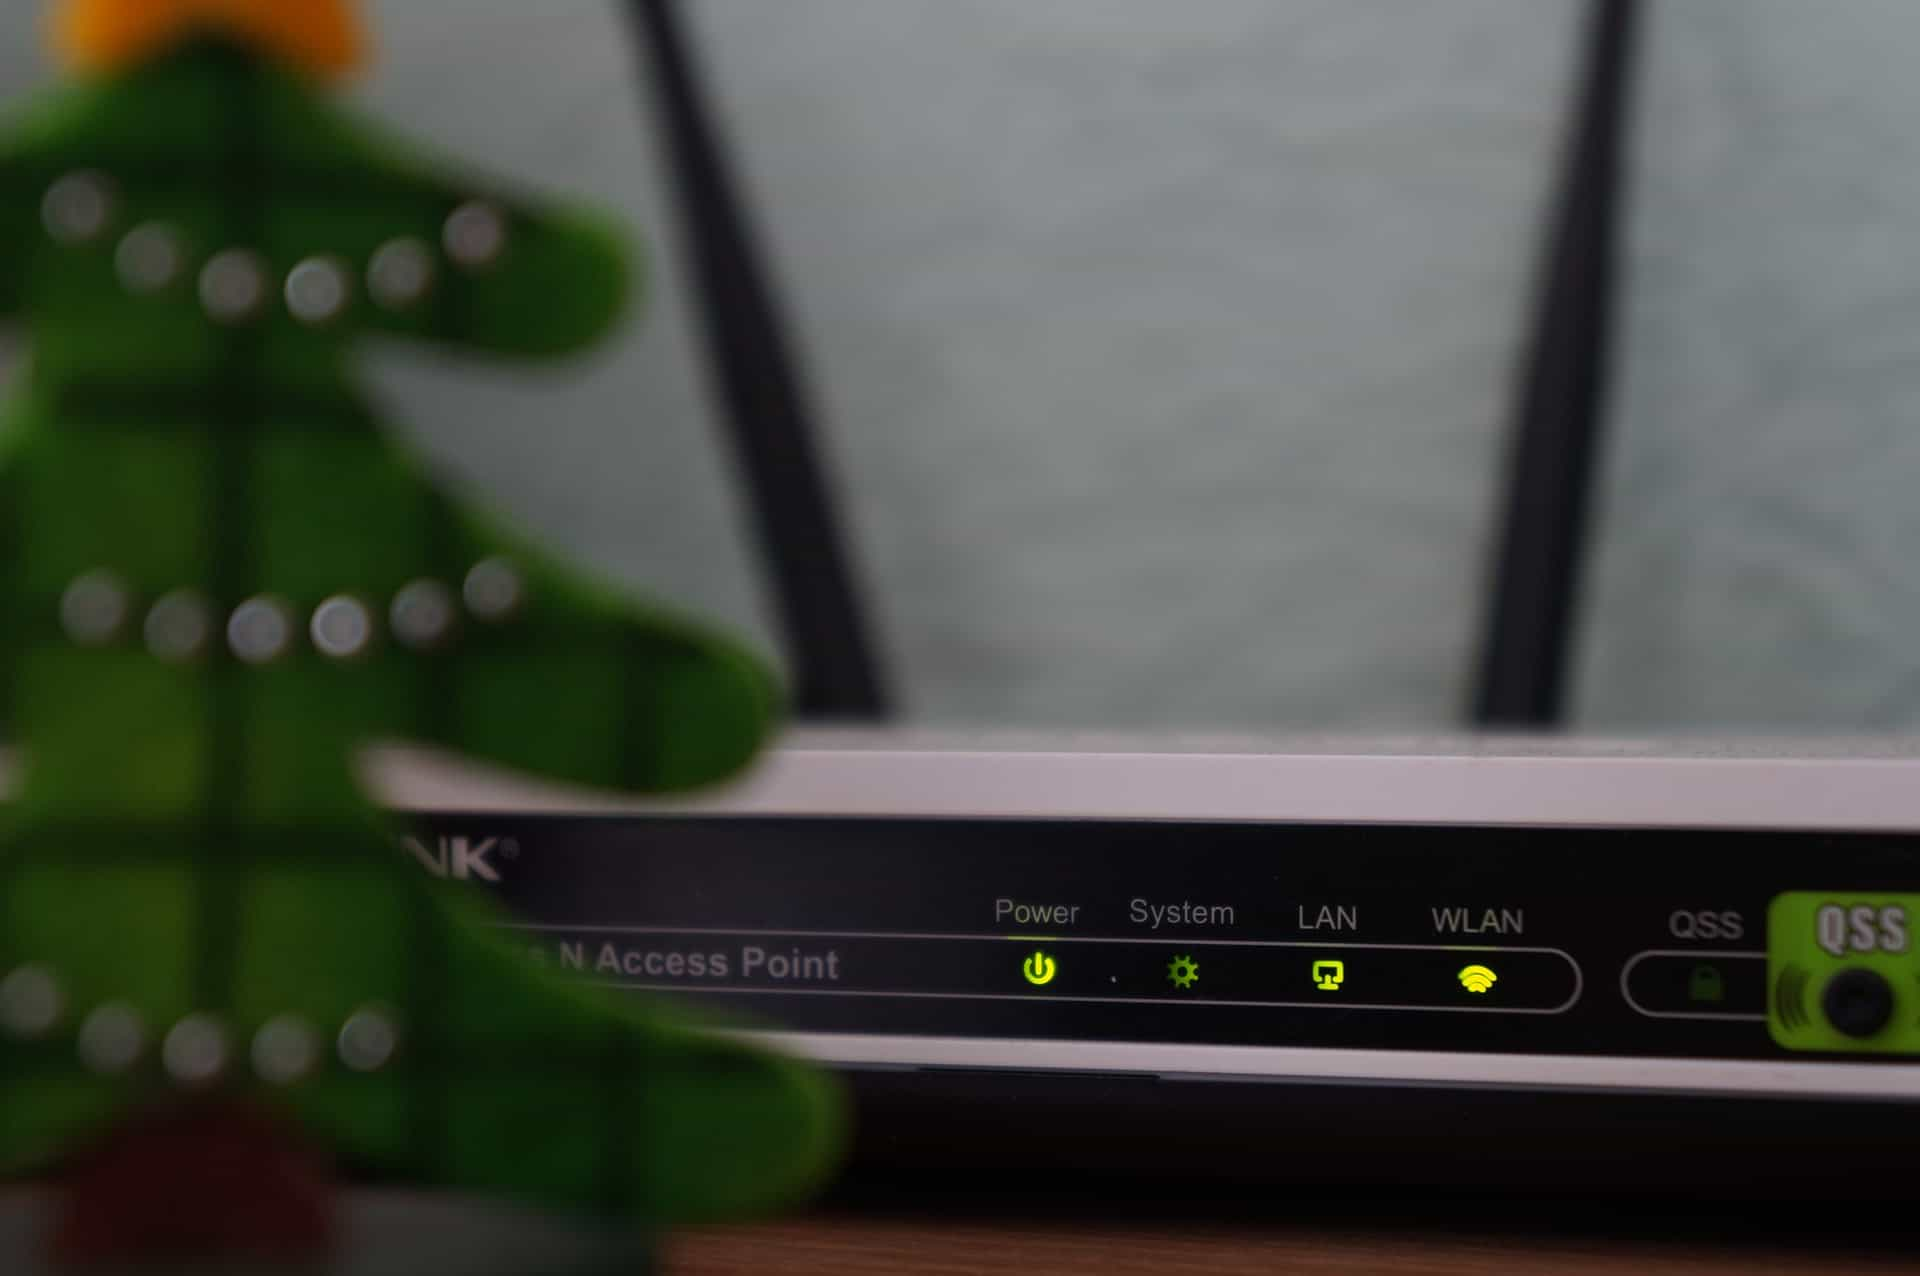 What to Do If Your Laptop Won't Connect to the Wi-Fi